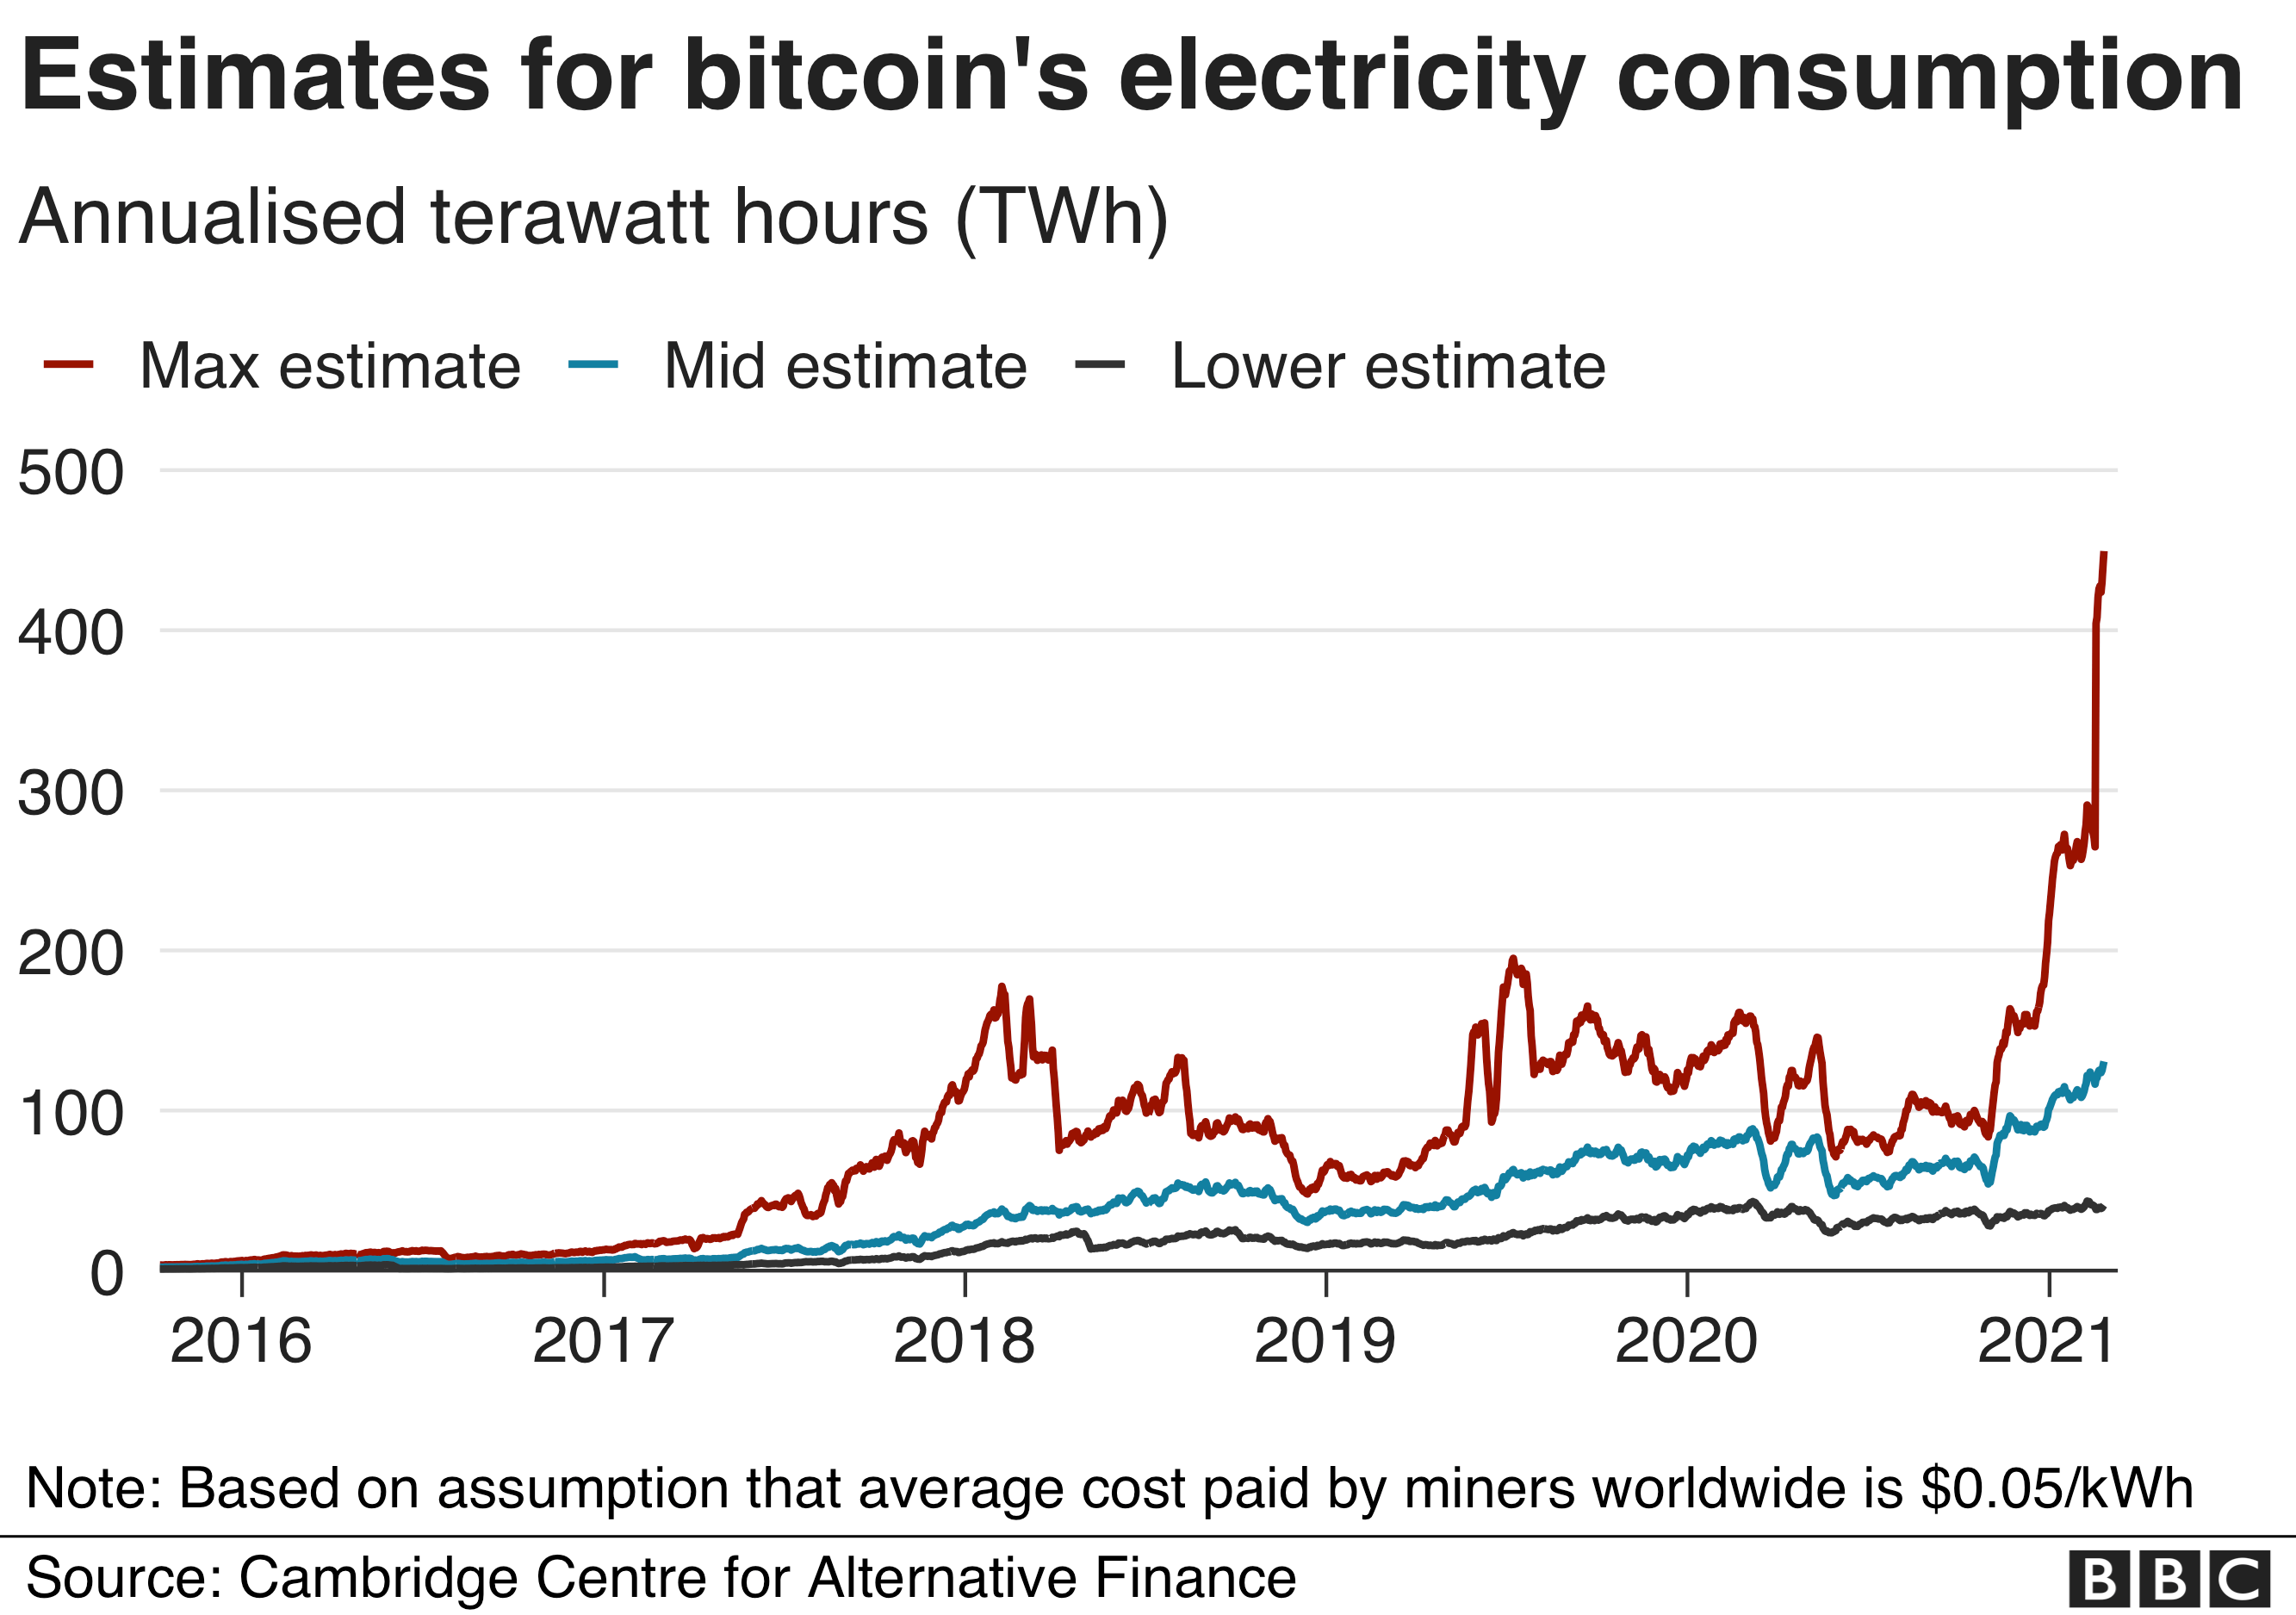 Estimates for bitcoin's electricity consumption